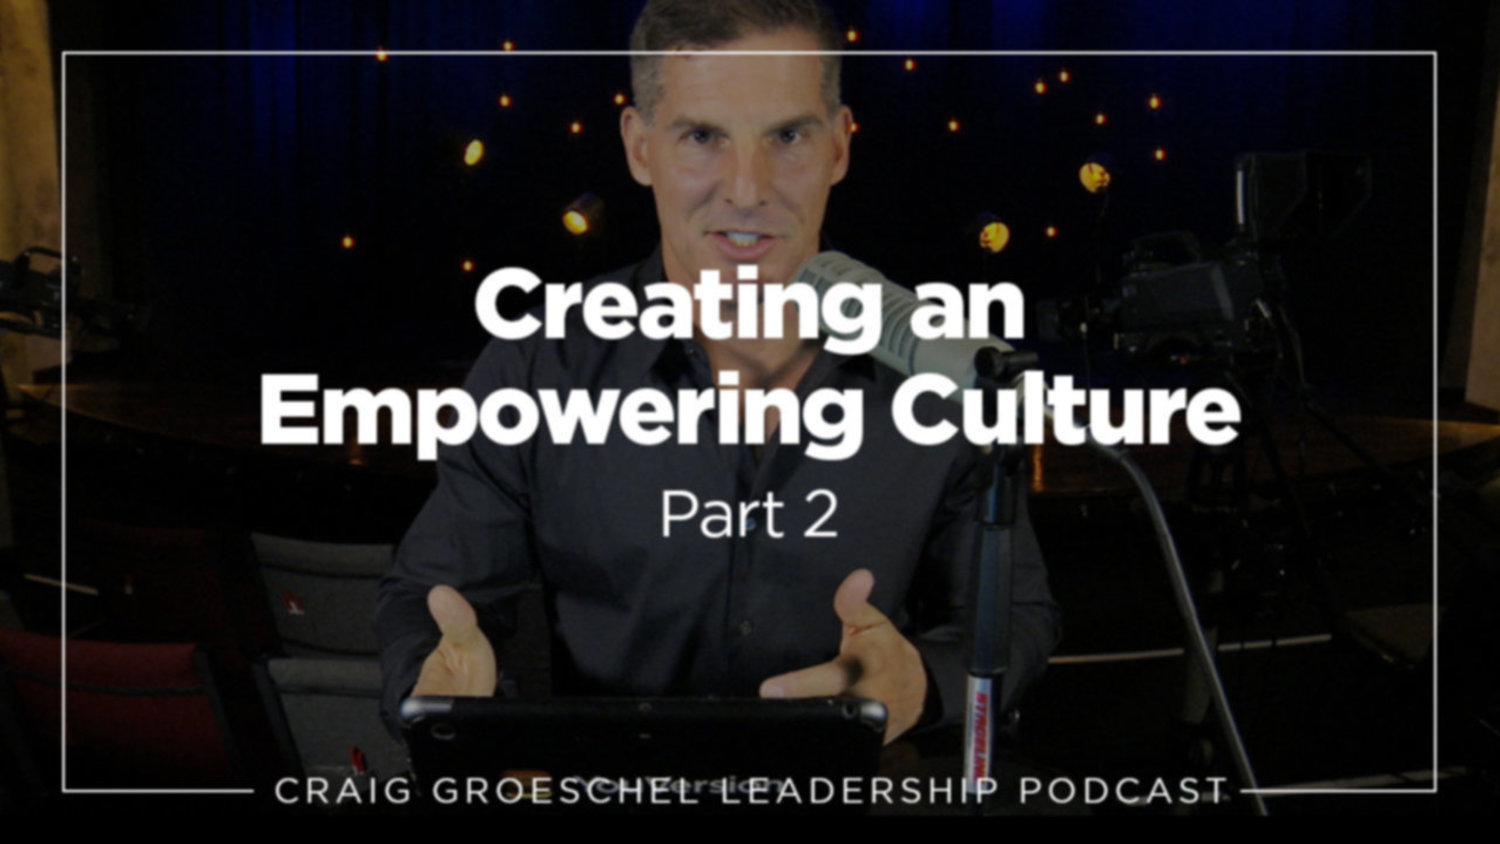 Creating an Empowering Culture, Part 2